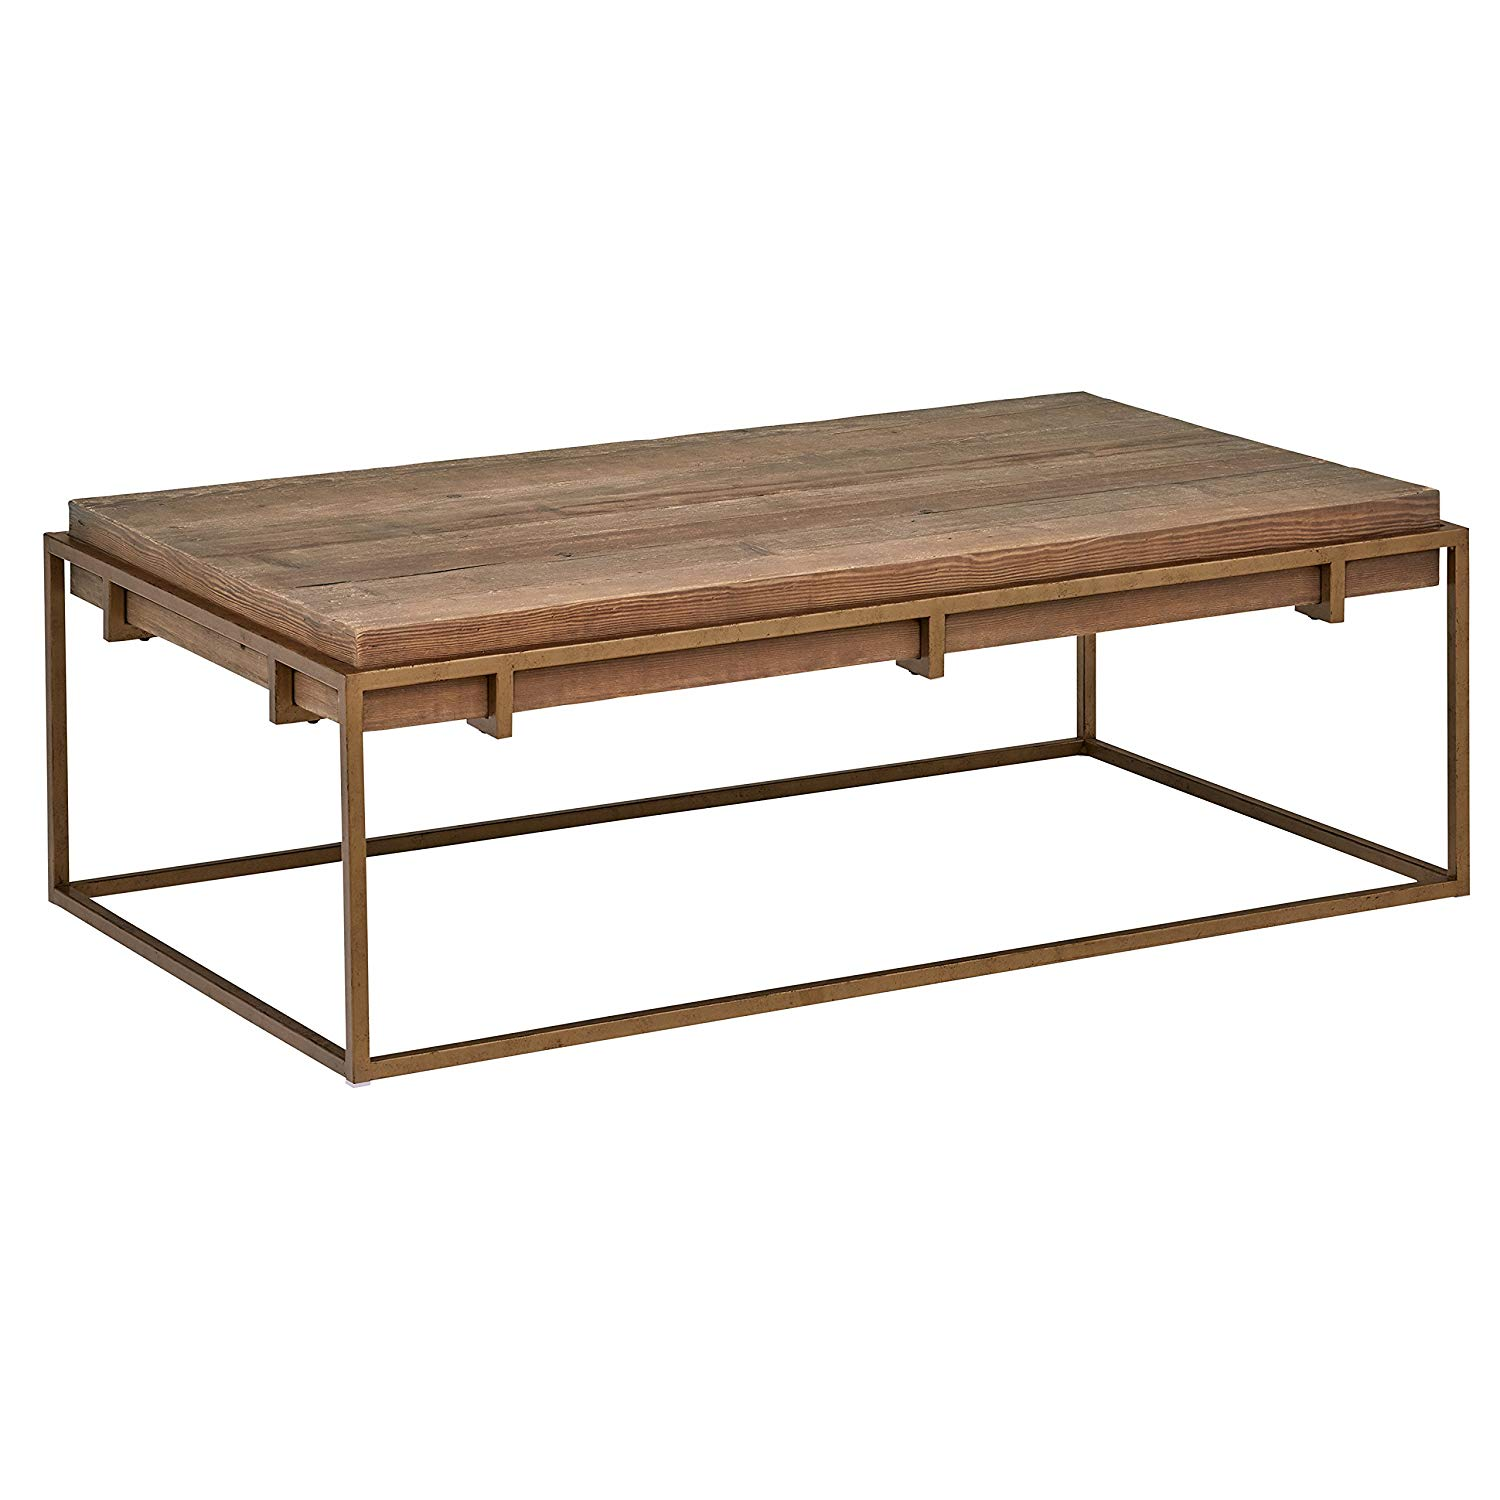 """Stone & Beam Sparrow Industrial Coffee Table, 55.1""""W, Wood and Bronze"""